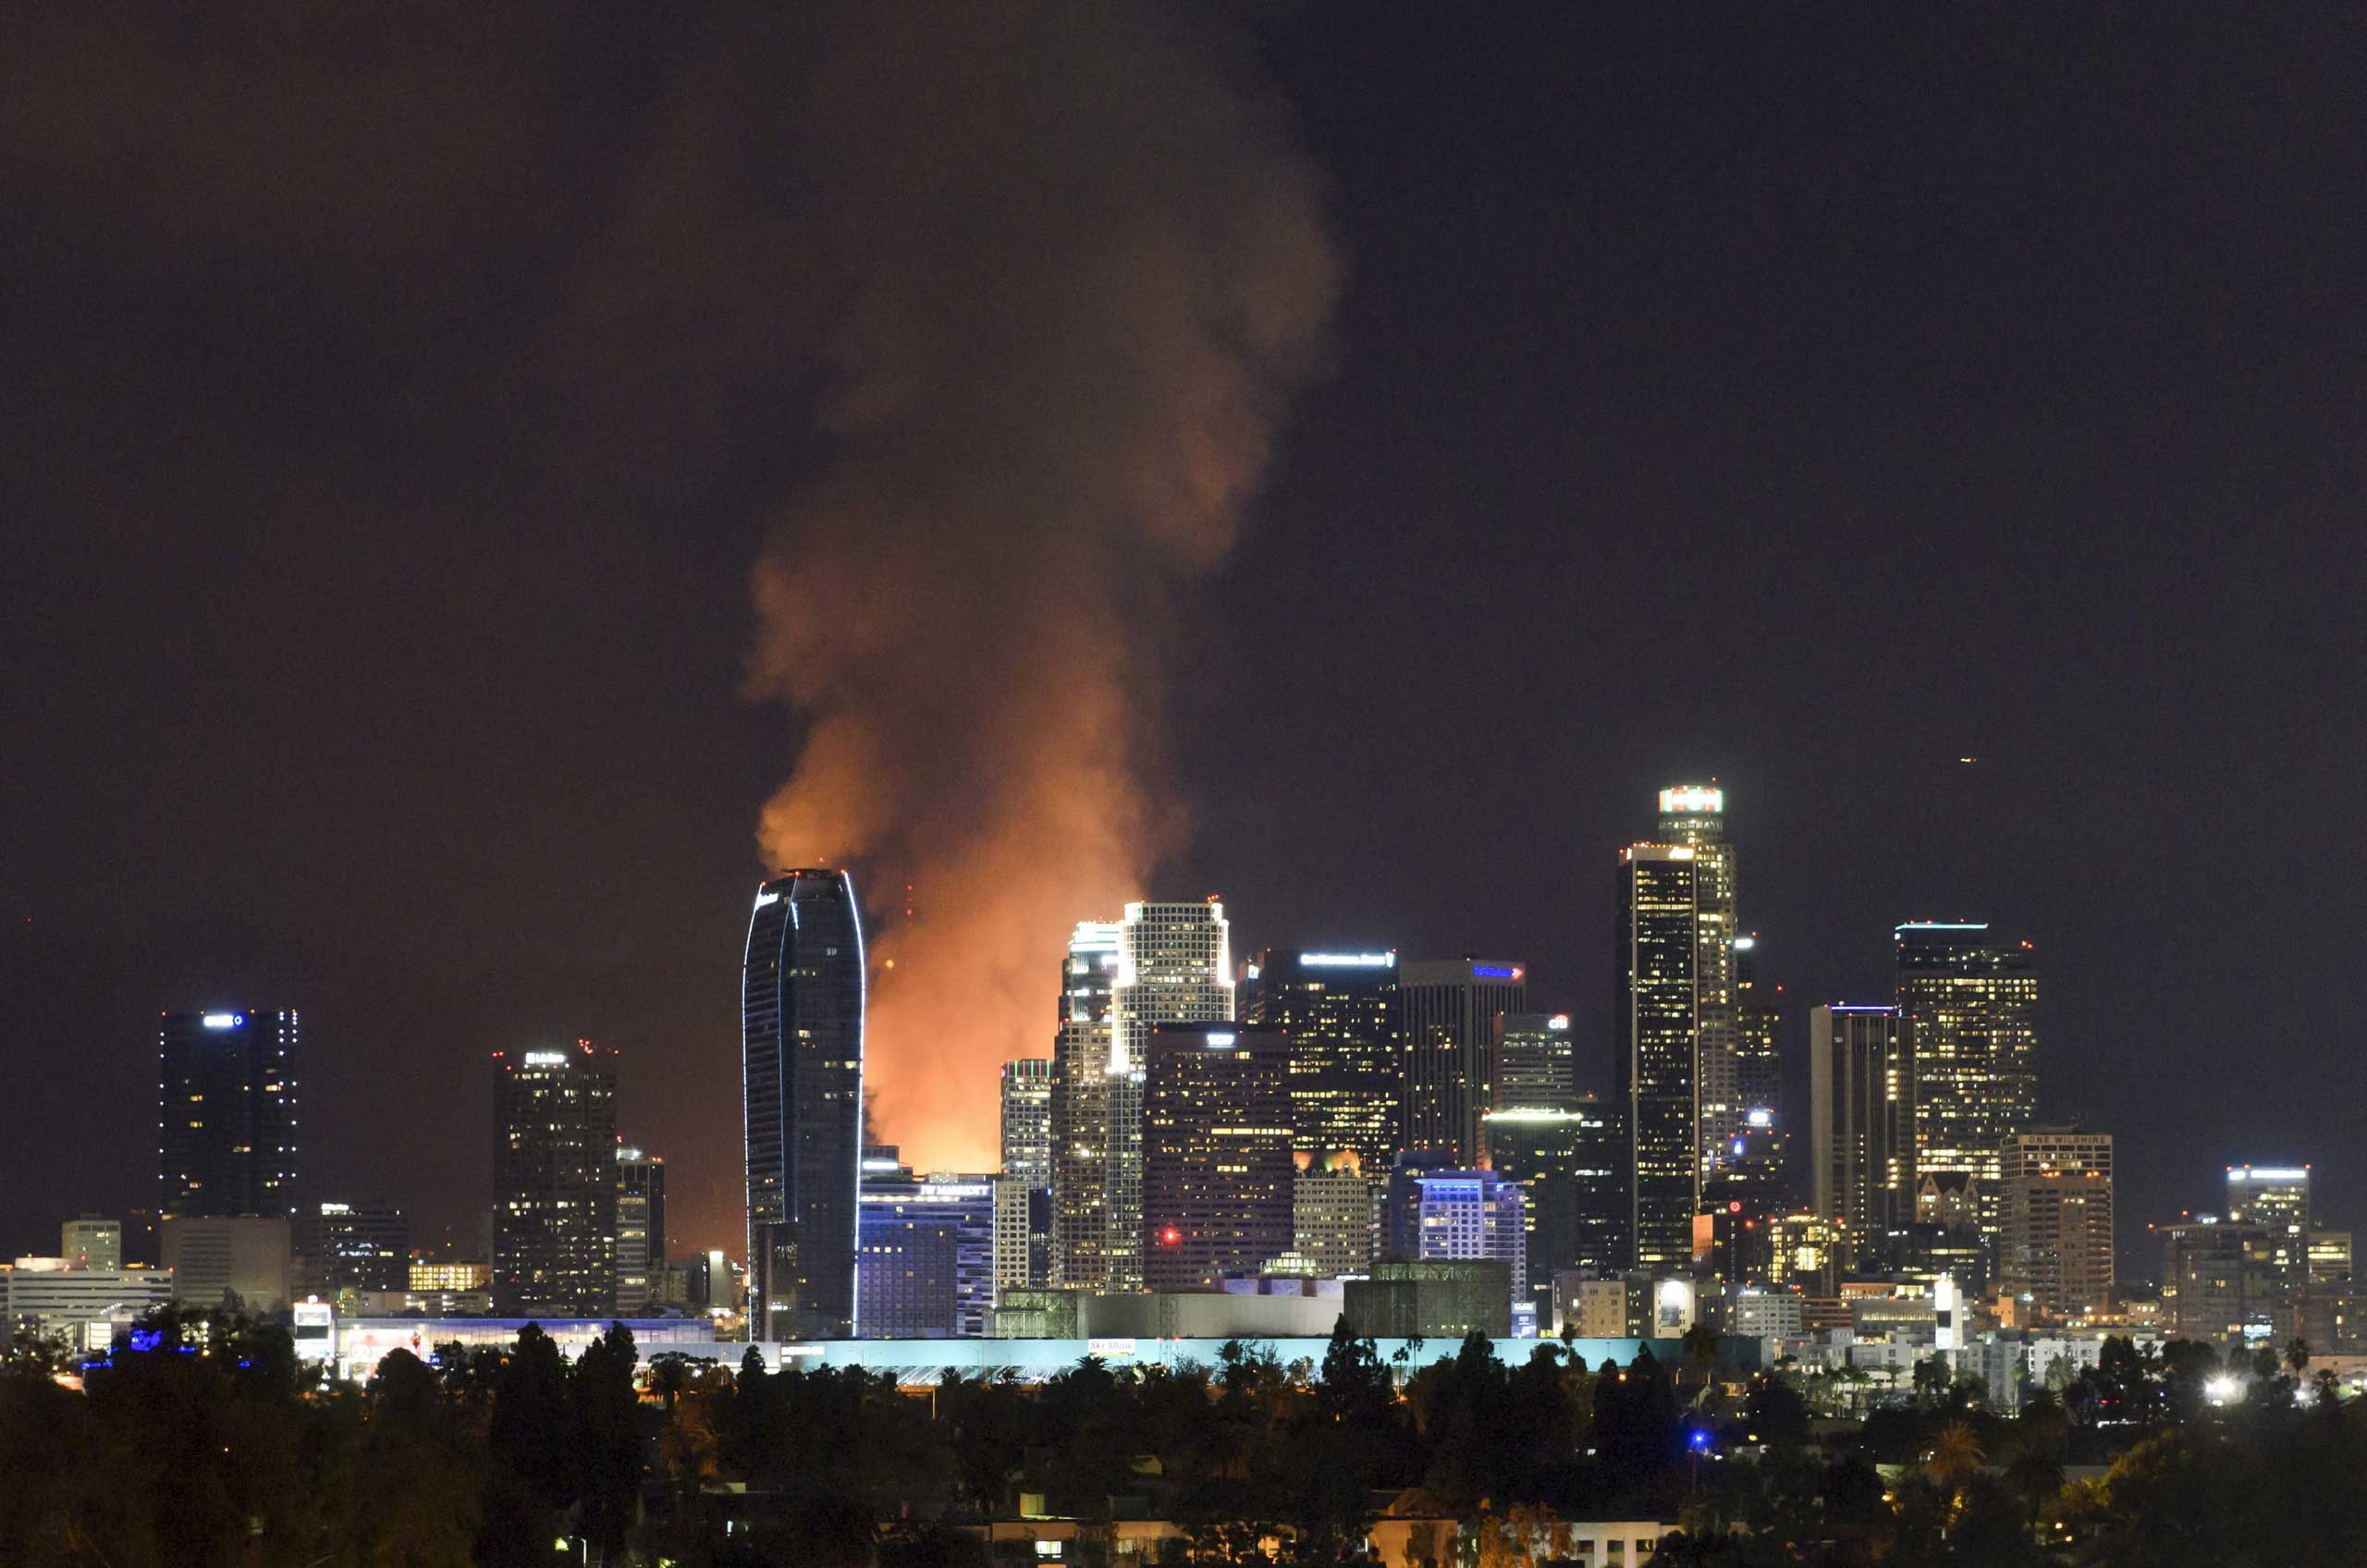 More than 200 firefighters work to control a fire that lit up the skyline as it destroys a seven-story building under construction in downtown Los Angeles on Dec. 8, 2014.